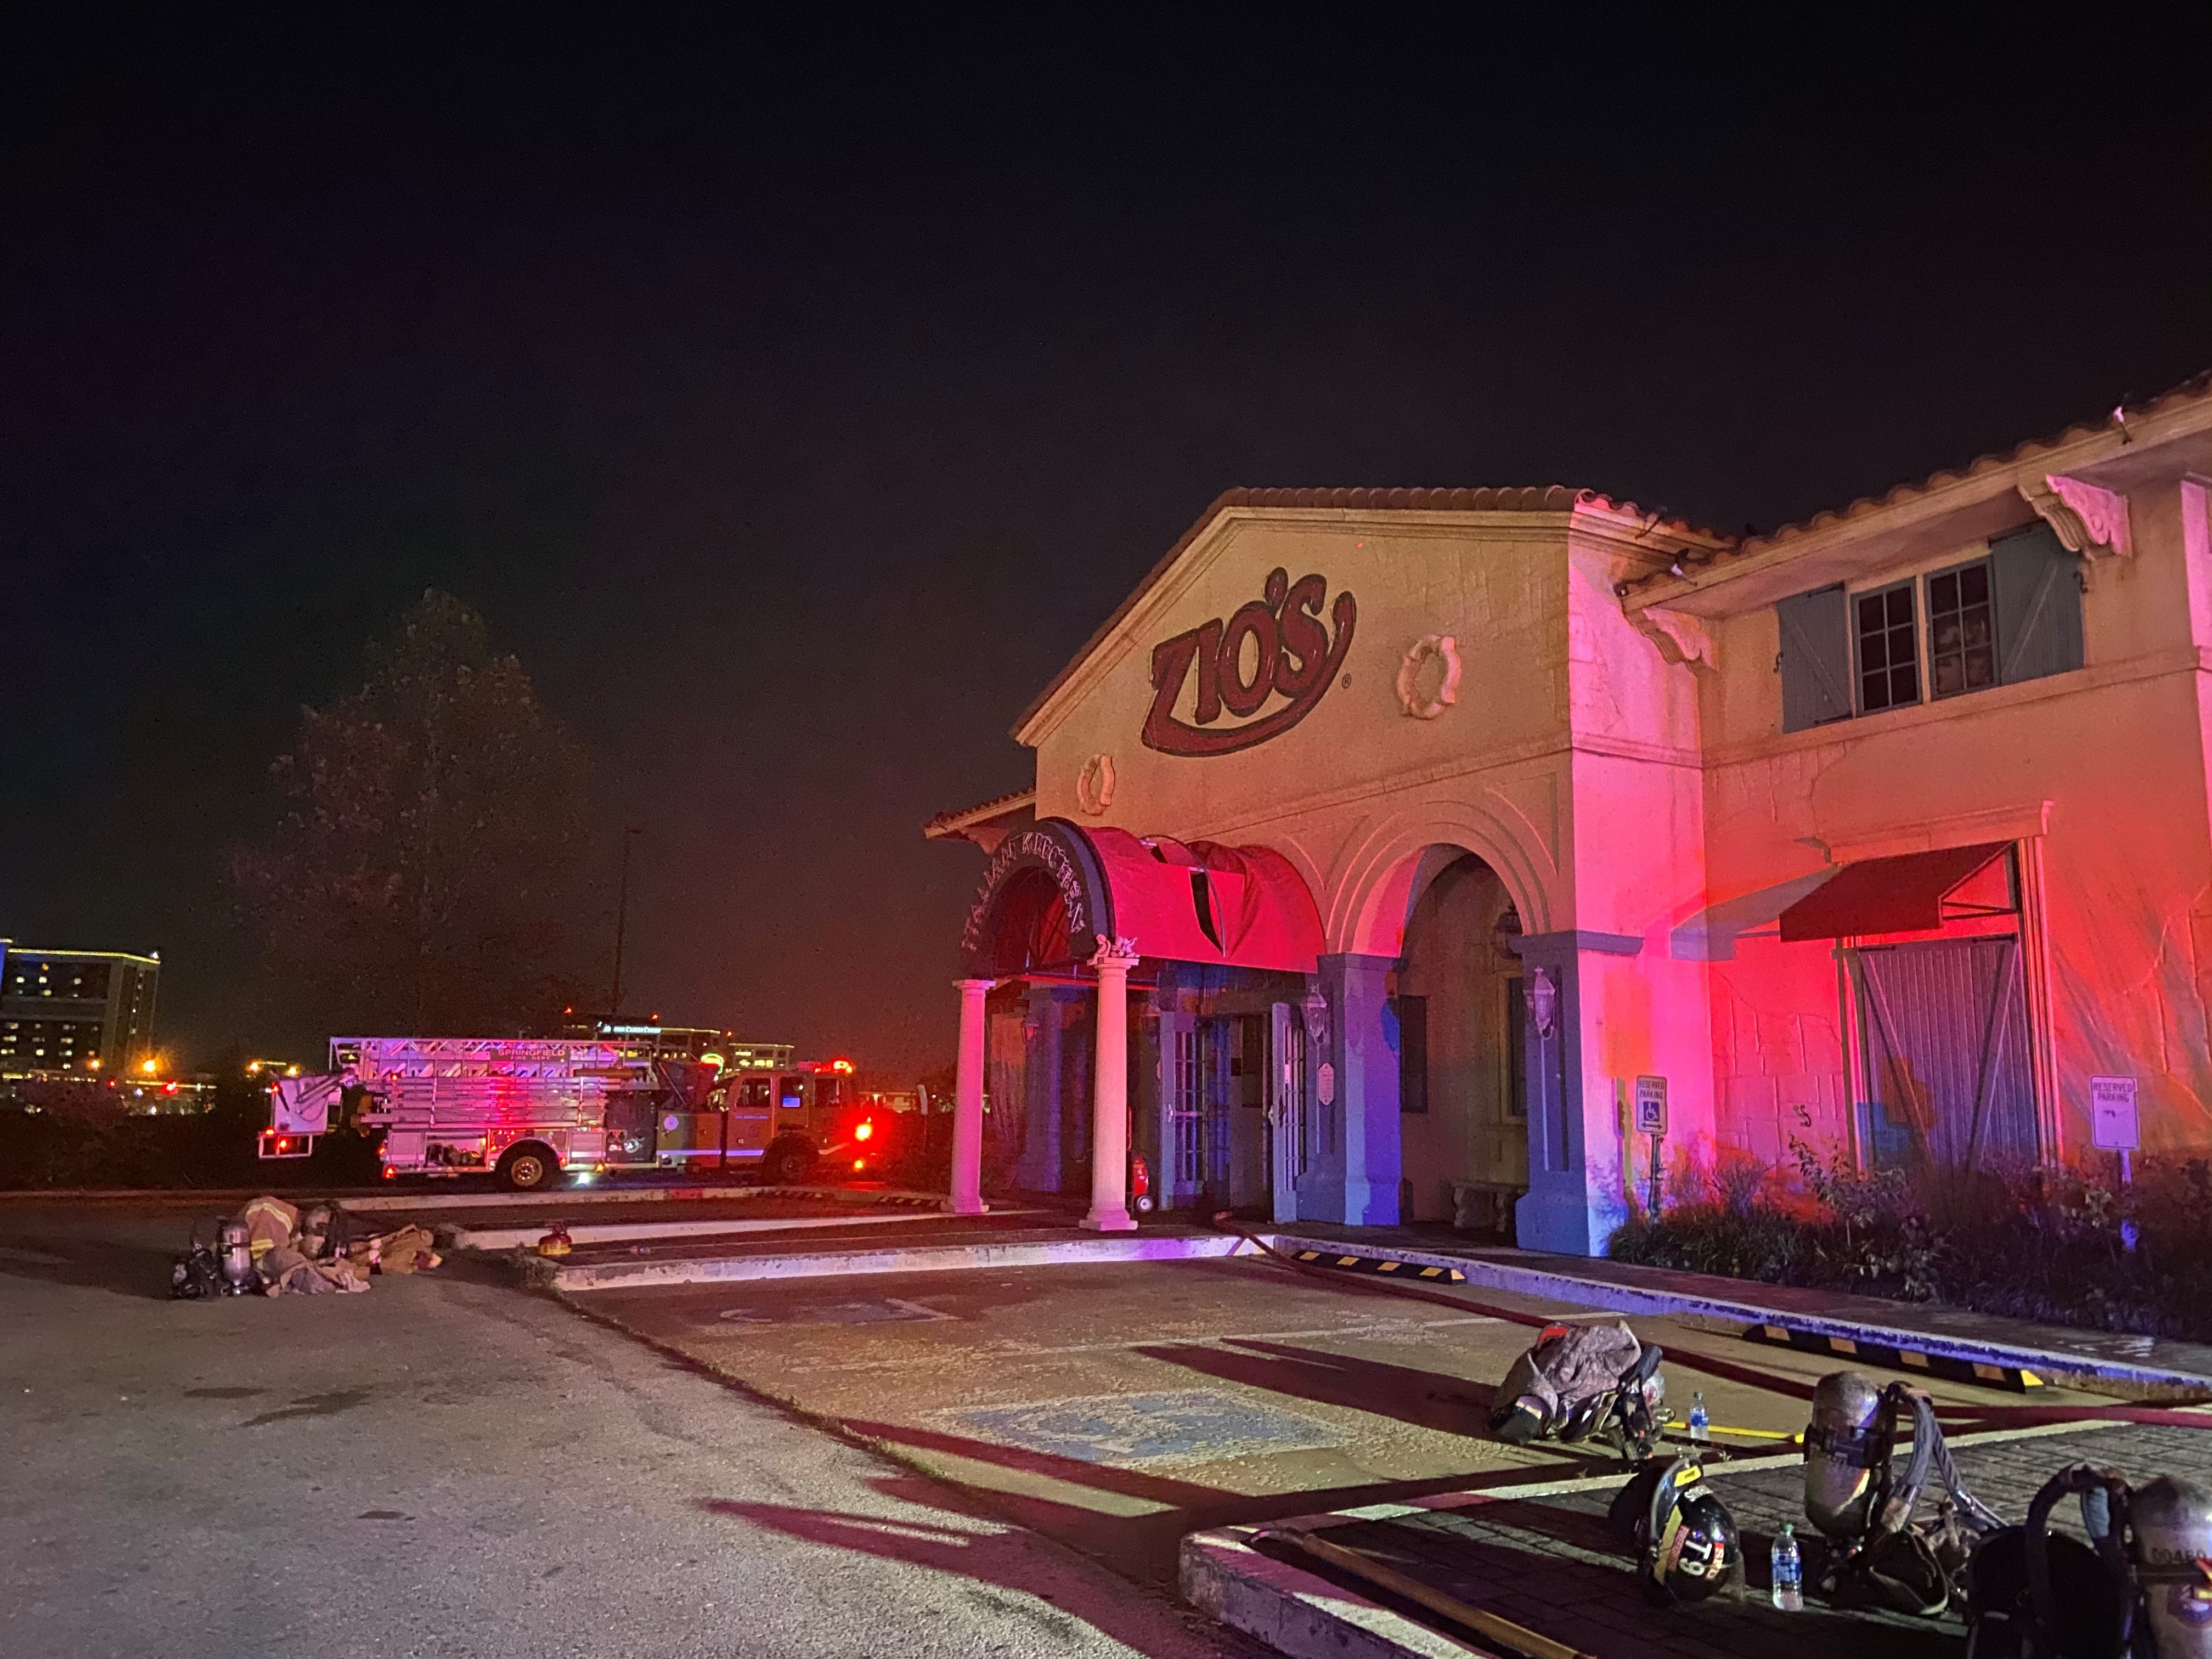 Staff evacuated during fire at Zio's Italian Kitchen